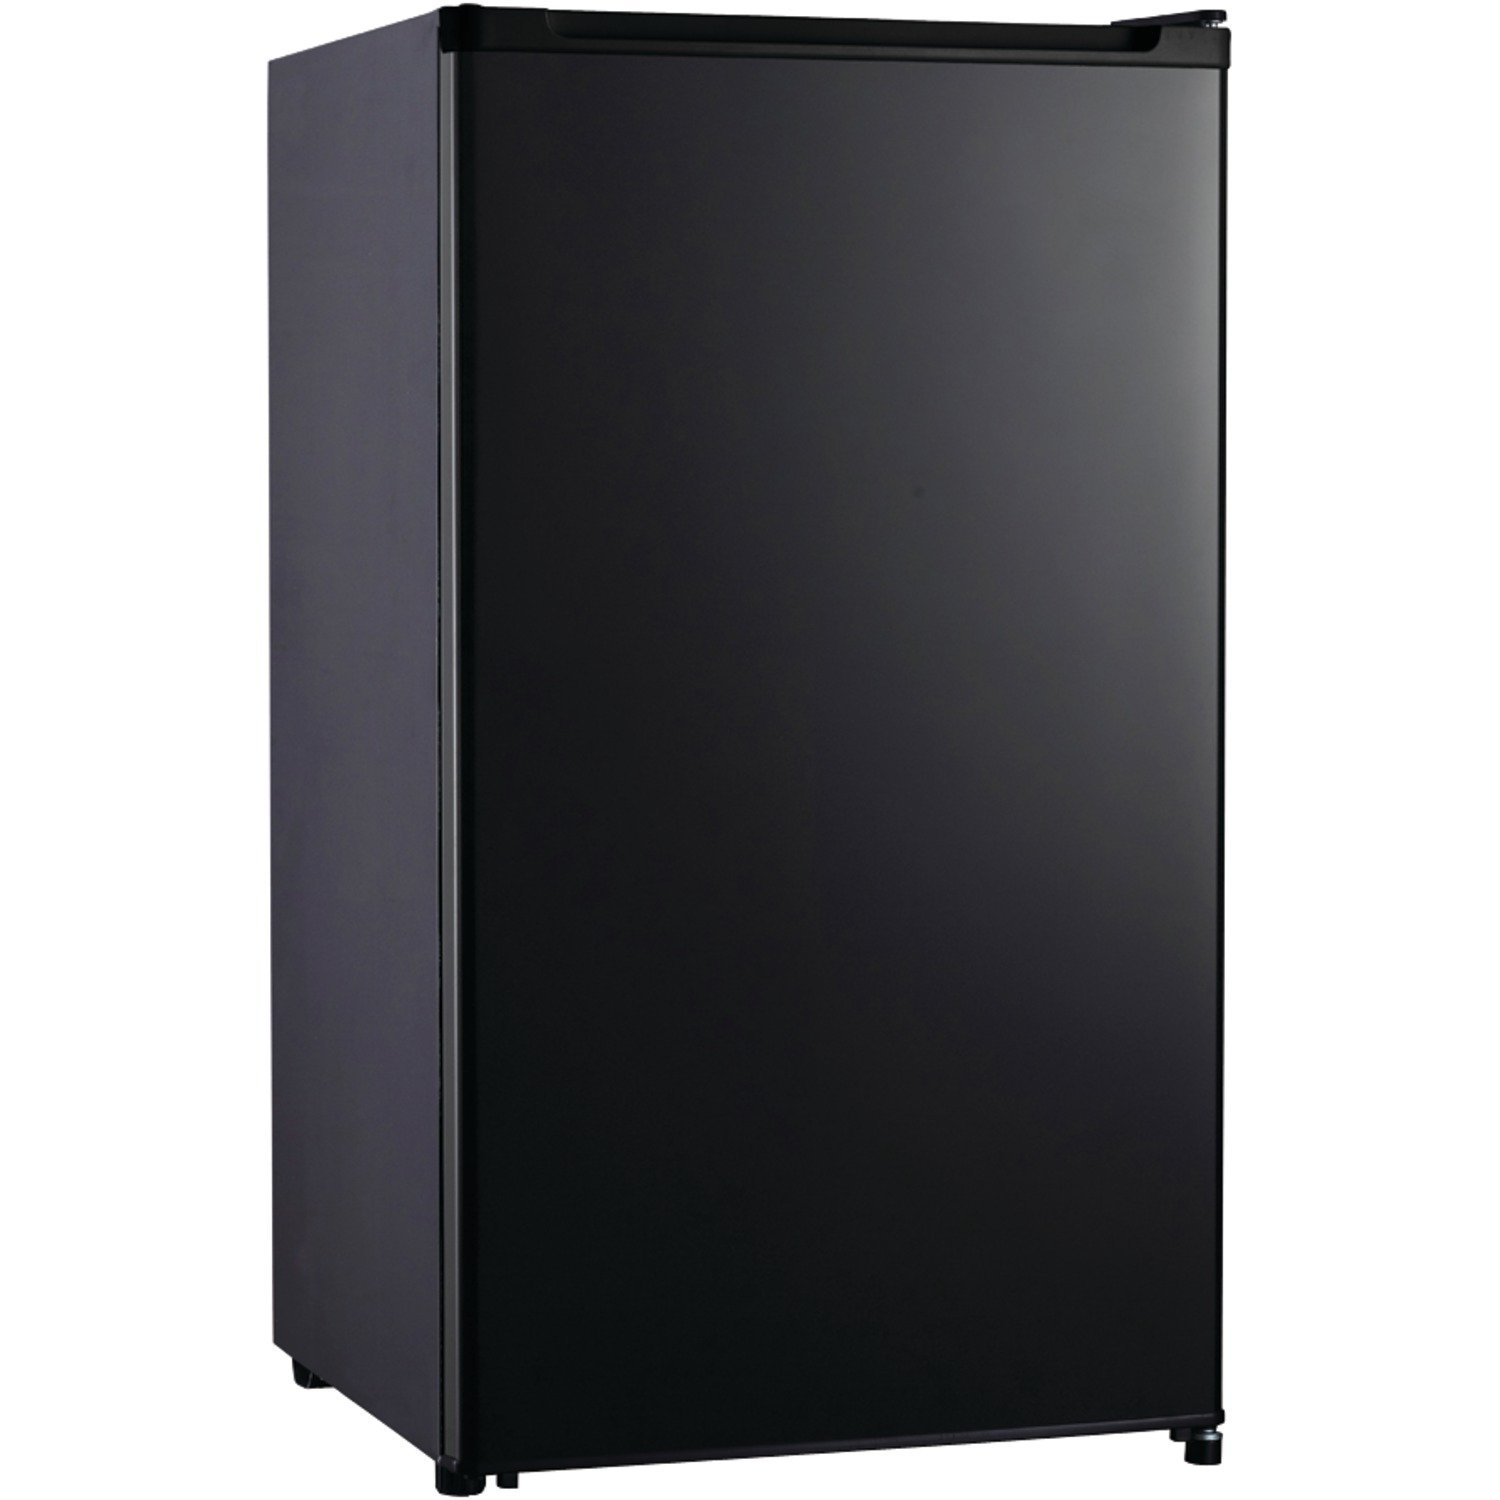 Magic Chef MCAR320B2 All Refrigerator, 3.2 cu. ft., Black